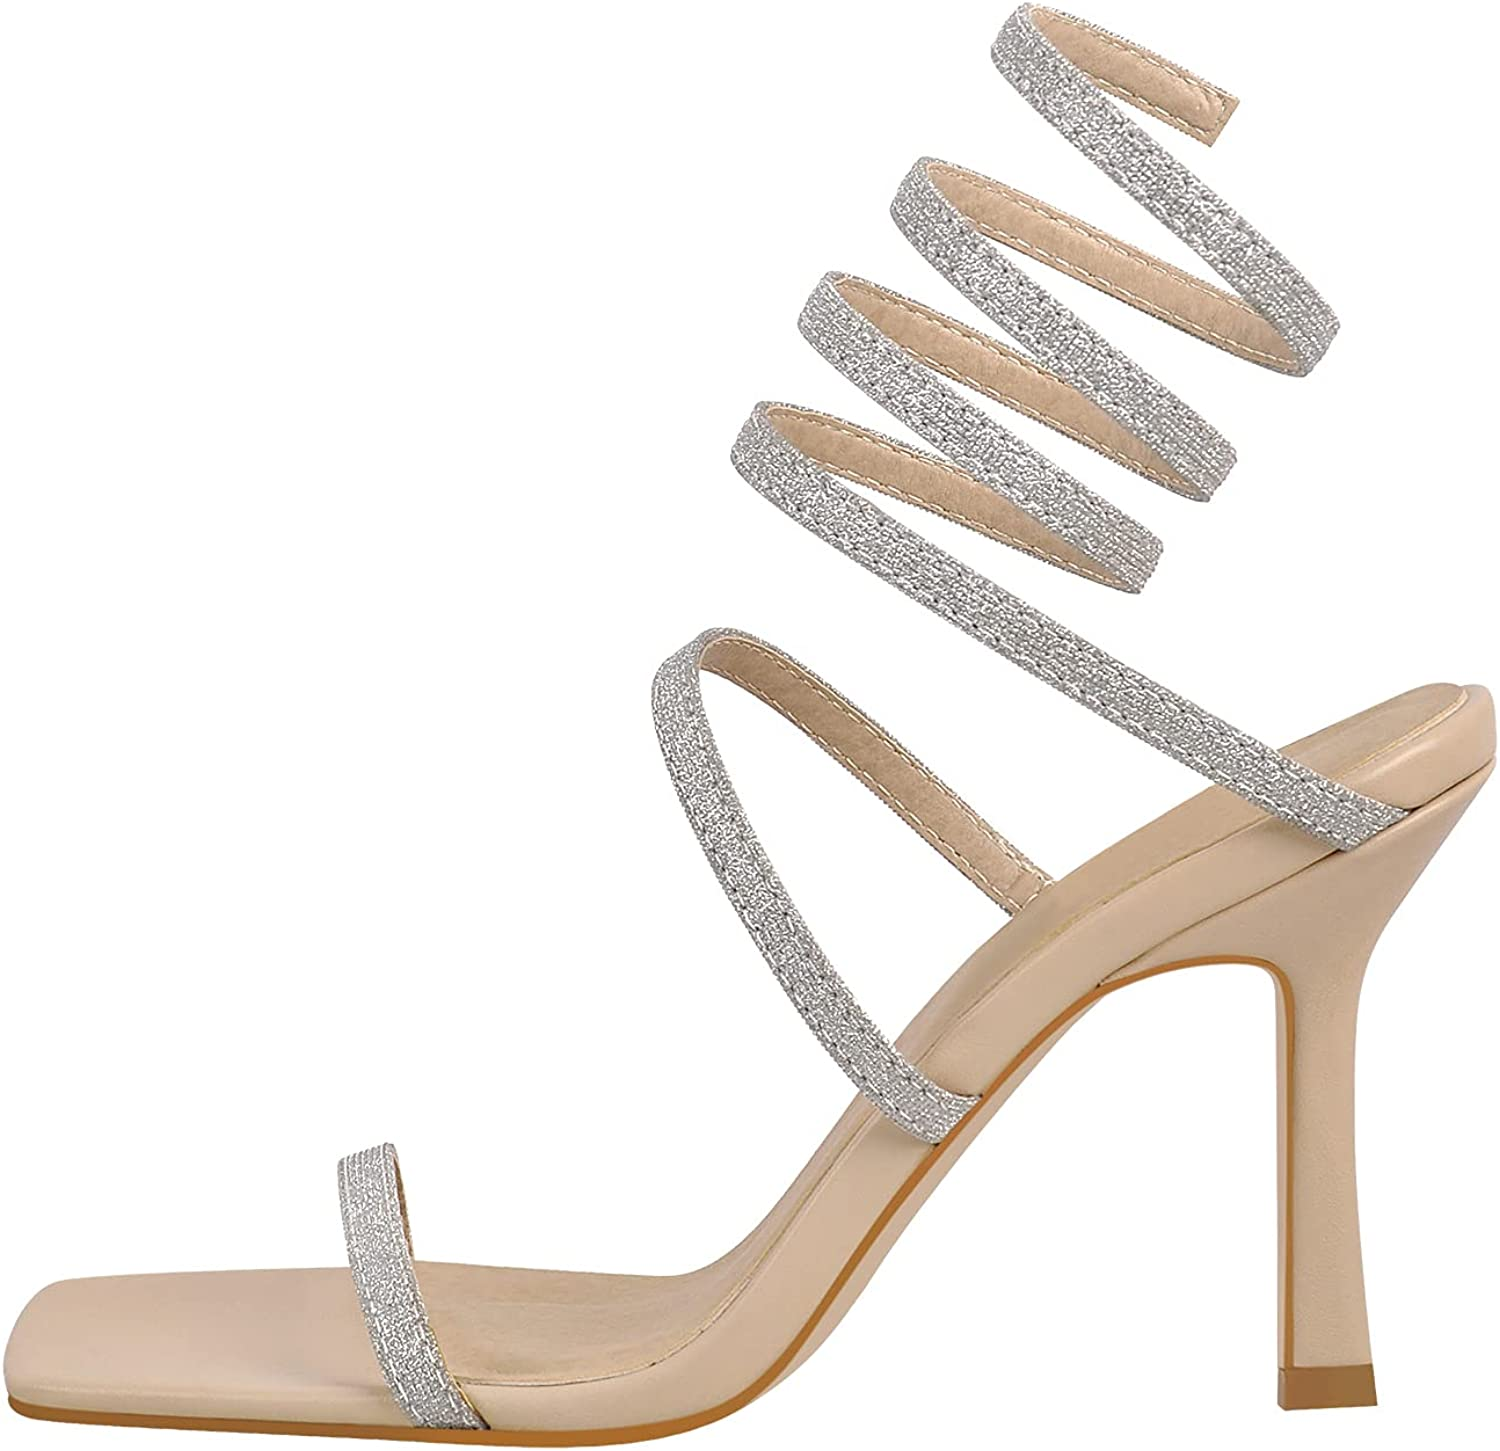 PINOKISS Women's Square Open toe High Heel Gifts On Sandals Free Shipping New Pull